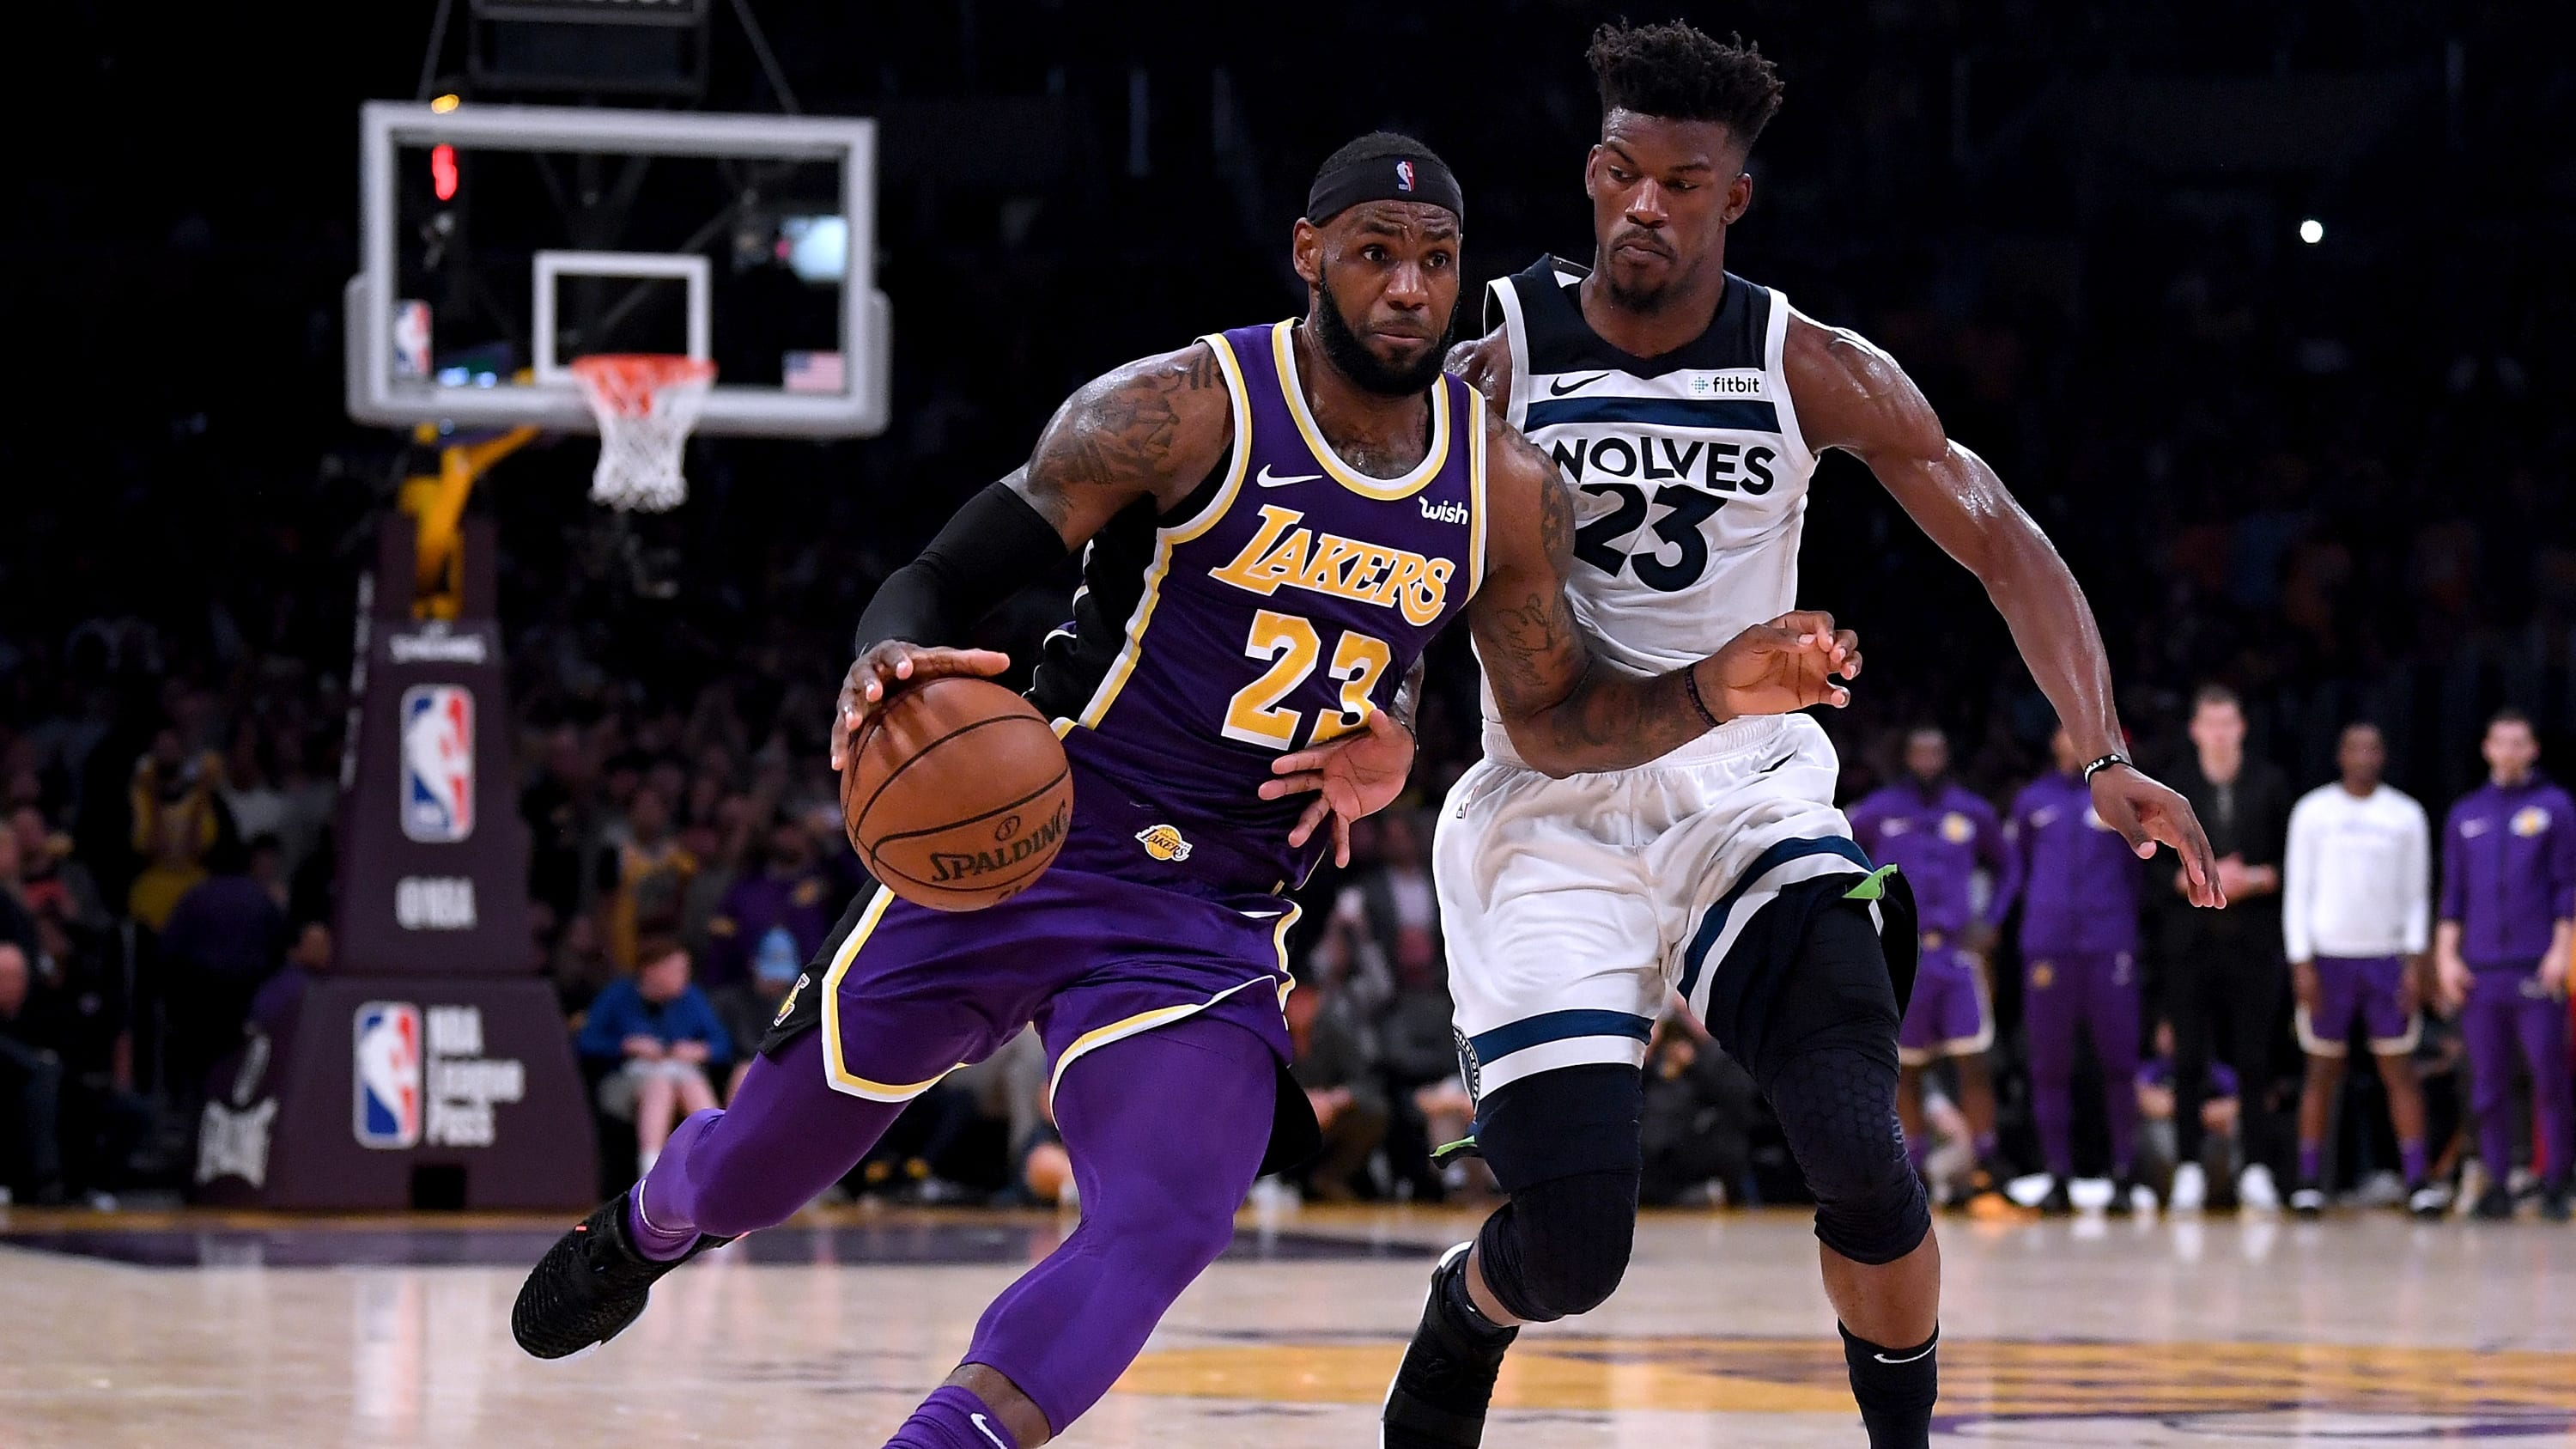 LOS ANGELES, CA - NOVEMBER 07:  LeBron James #23 of the Los Angeles Lakers drives to the basket past Jimmy Butler #23 of the Minnesota Timberwolves during a 114-110 Lakers win at Staples Center on November 7, 2018 in Los Angeles, California.  NOTE TO USER: User expressly acknowledges and agrees that, by downloading and or using this photograph, User is consenting to the terms and conditions of the Getty Images License Agreement.  (Photo by Harry How/Getty Images)